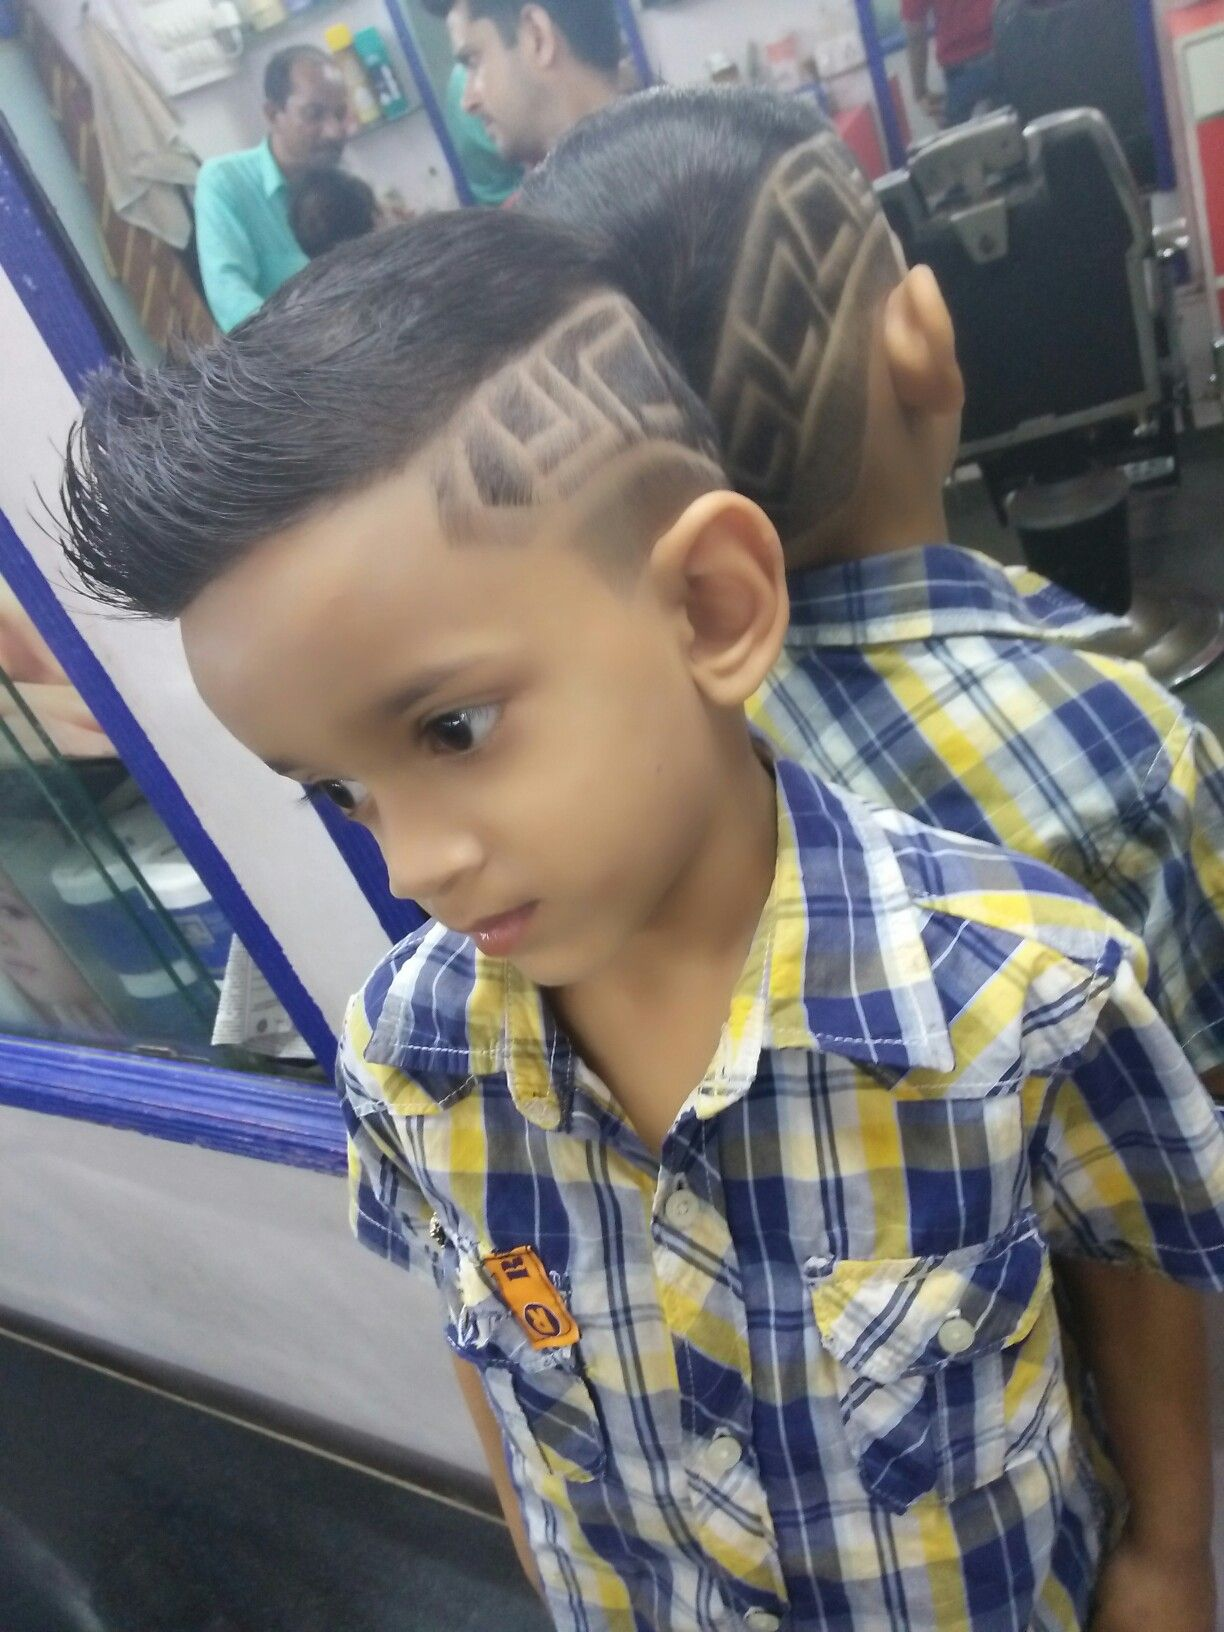 Double side haircut for boys kids hair style  hair styling  pinterest  hair style